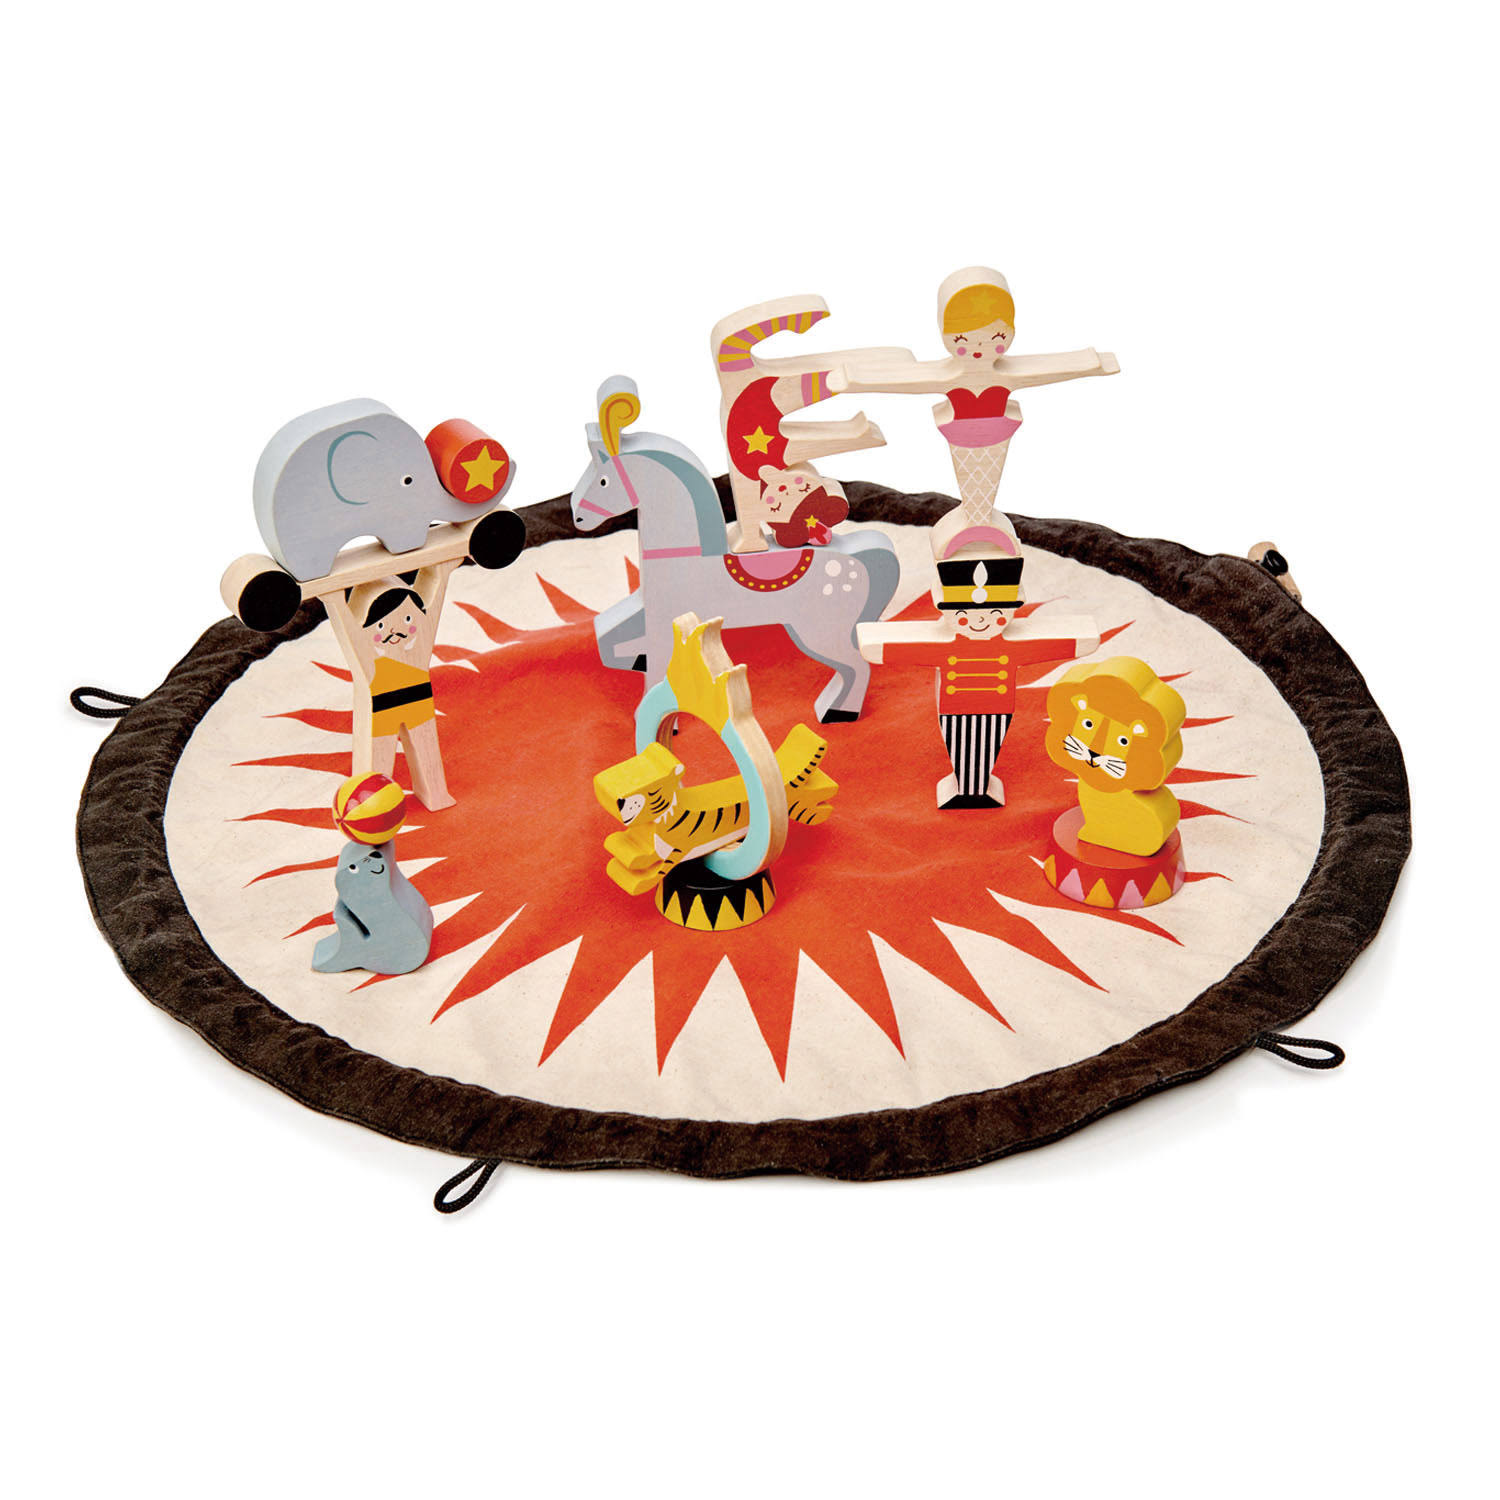 Tender Leaf Toys Circus Story Bag Playset